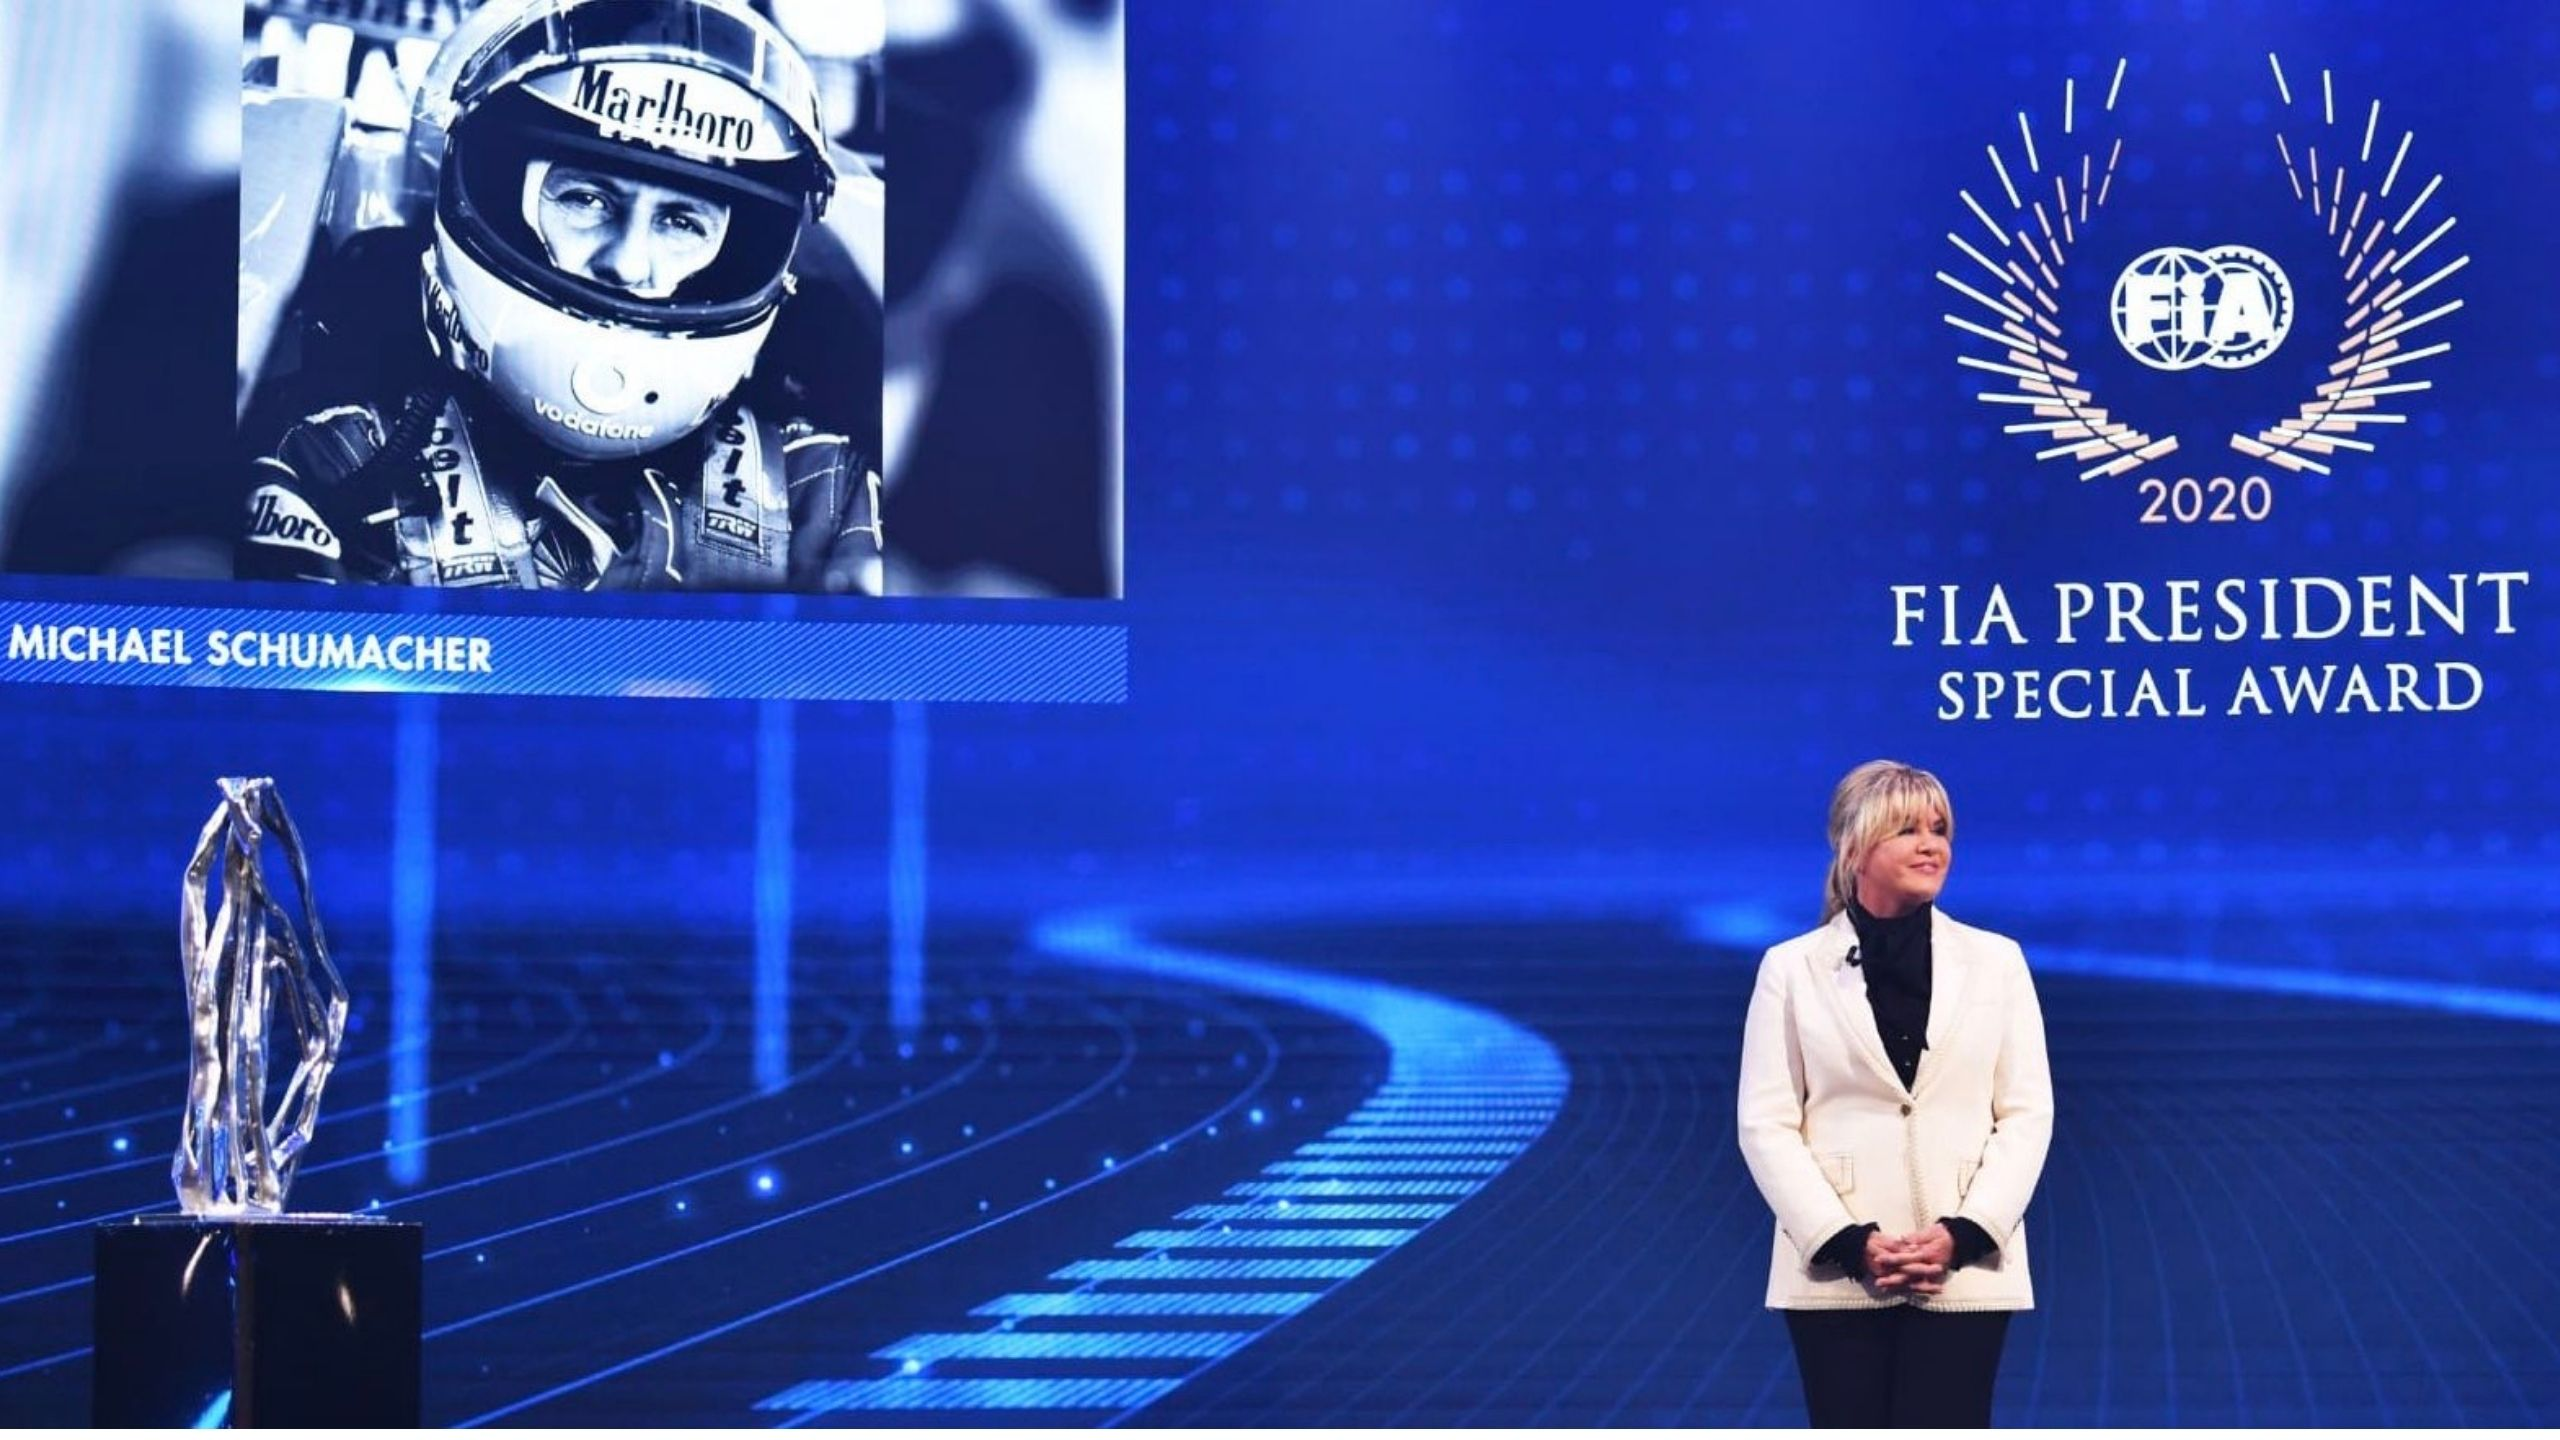 """""""Michael and Lewis are champions but also incredible human beings"""" - Schumacher and Hamilton receive FIA President's Special Award at annual F1 Prize Giving Ceremony"""